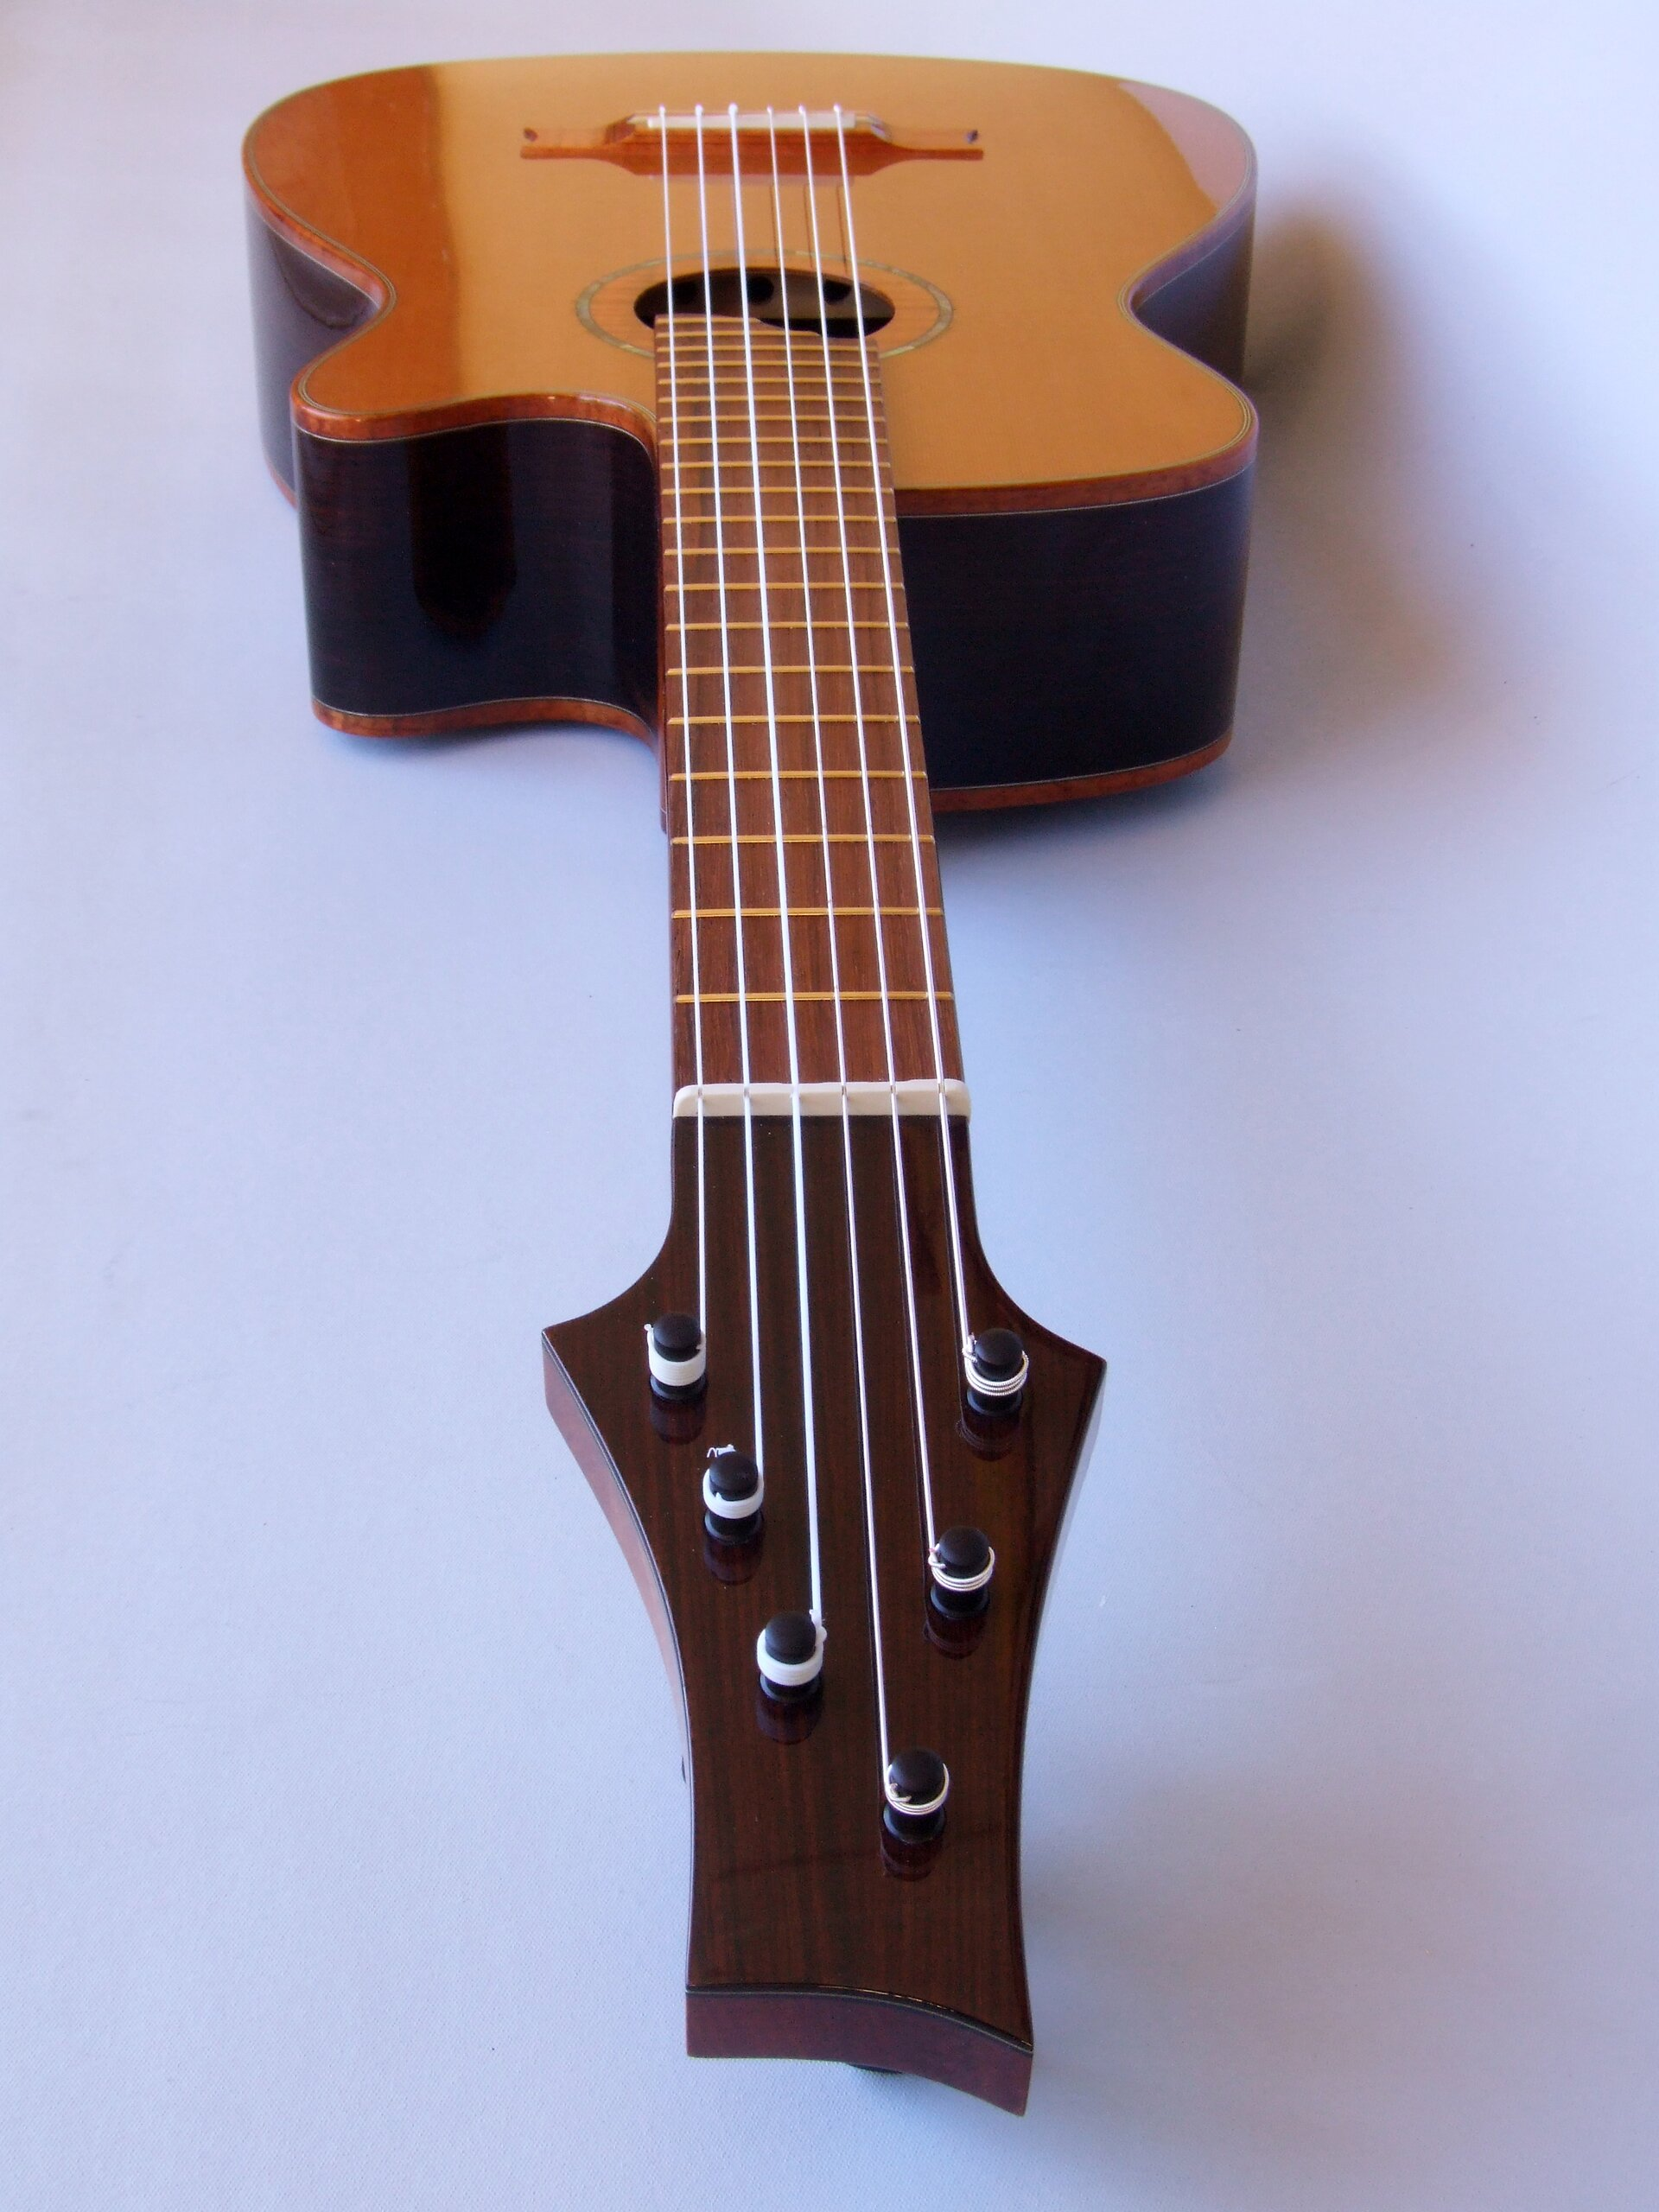 Looking down the neck of a cedar topped cutaway classical guitar with planetary peg tuners